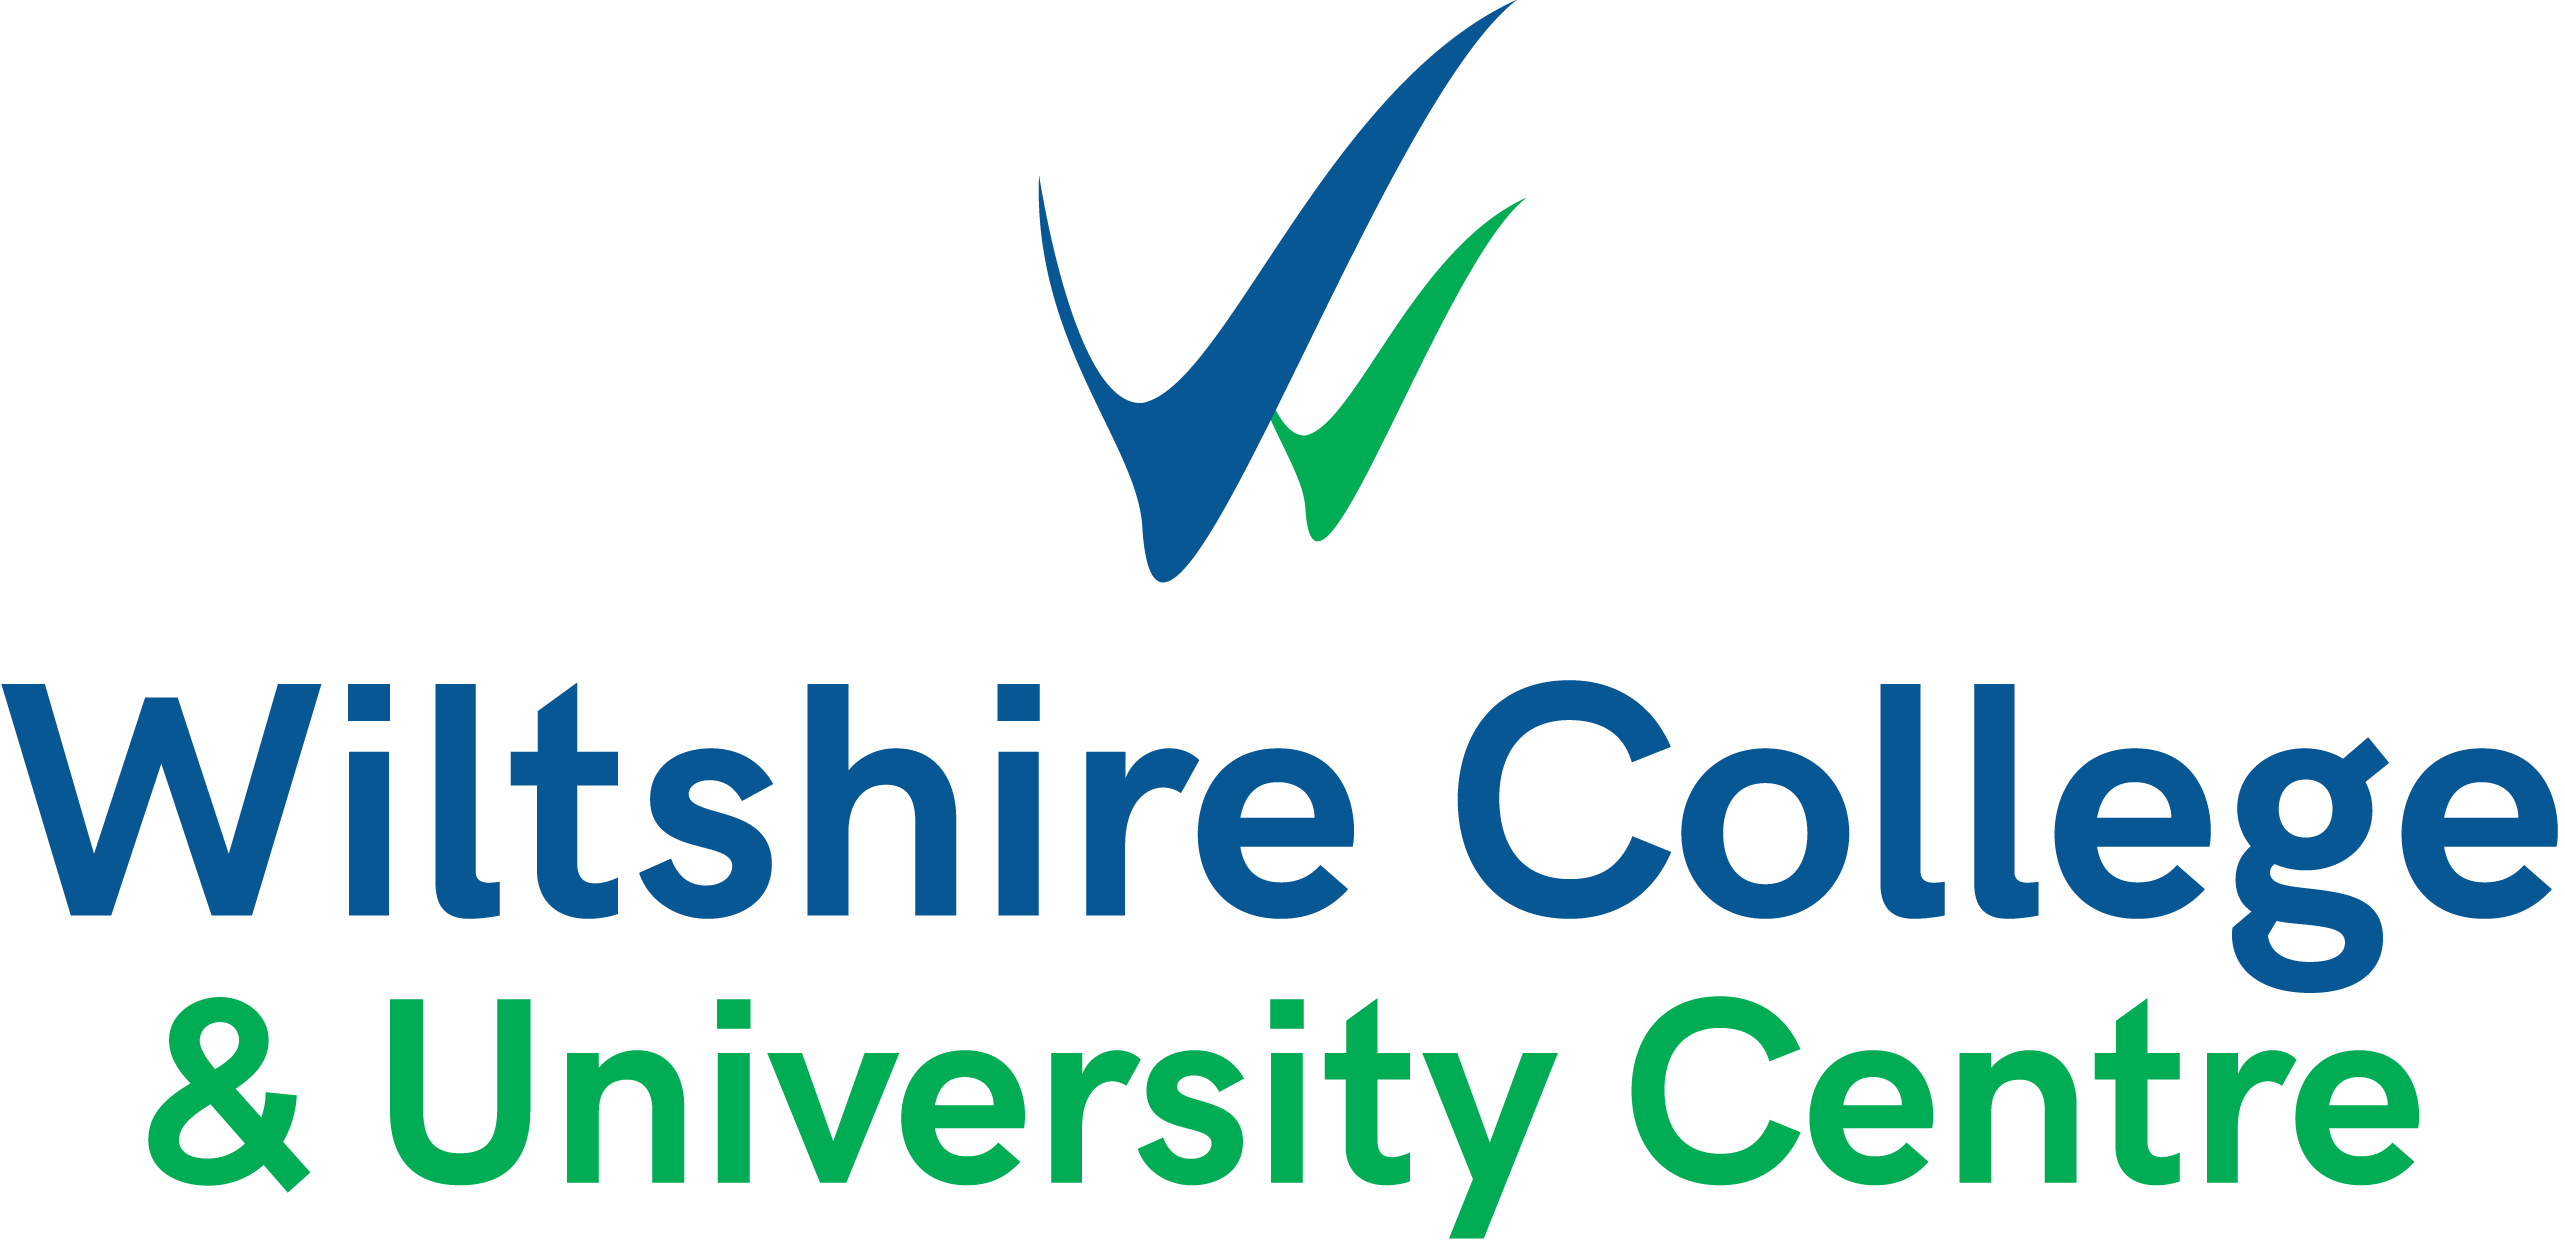 Wiltshire College and University Centre